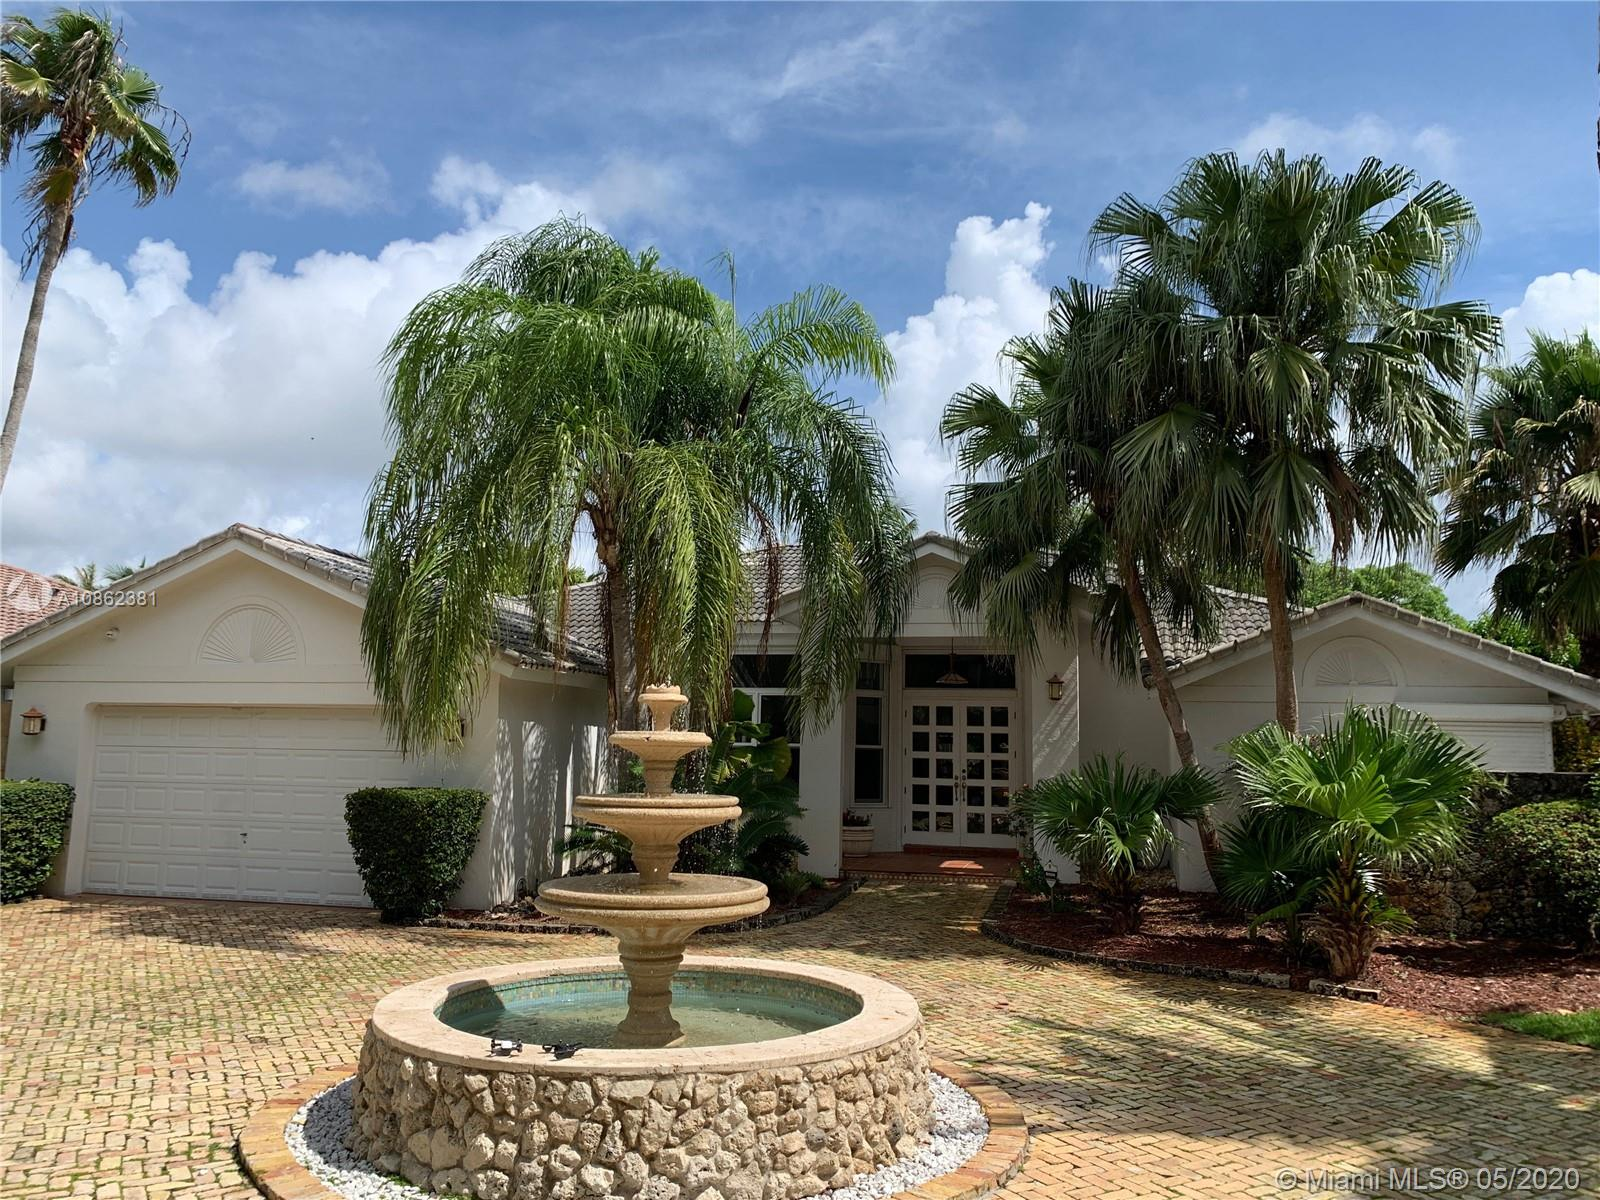 8271 SW 171st Ter, Palmetto Bay, Florida 33157, 4 Bedrooms Bedrooms, ,3 BathroomsBathrooms,Residential,For Sale,8271 SW 171st Ter,A10862381